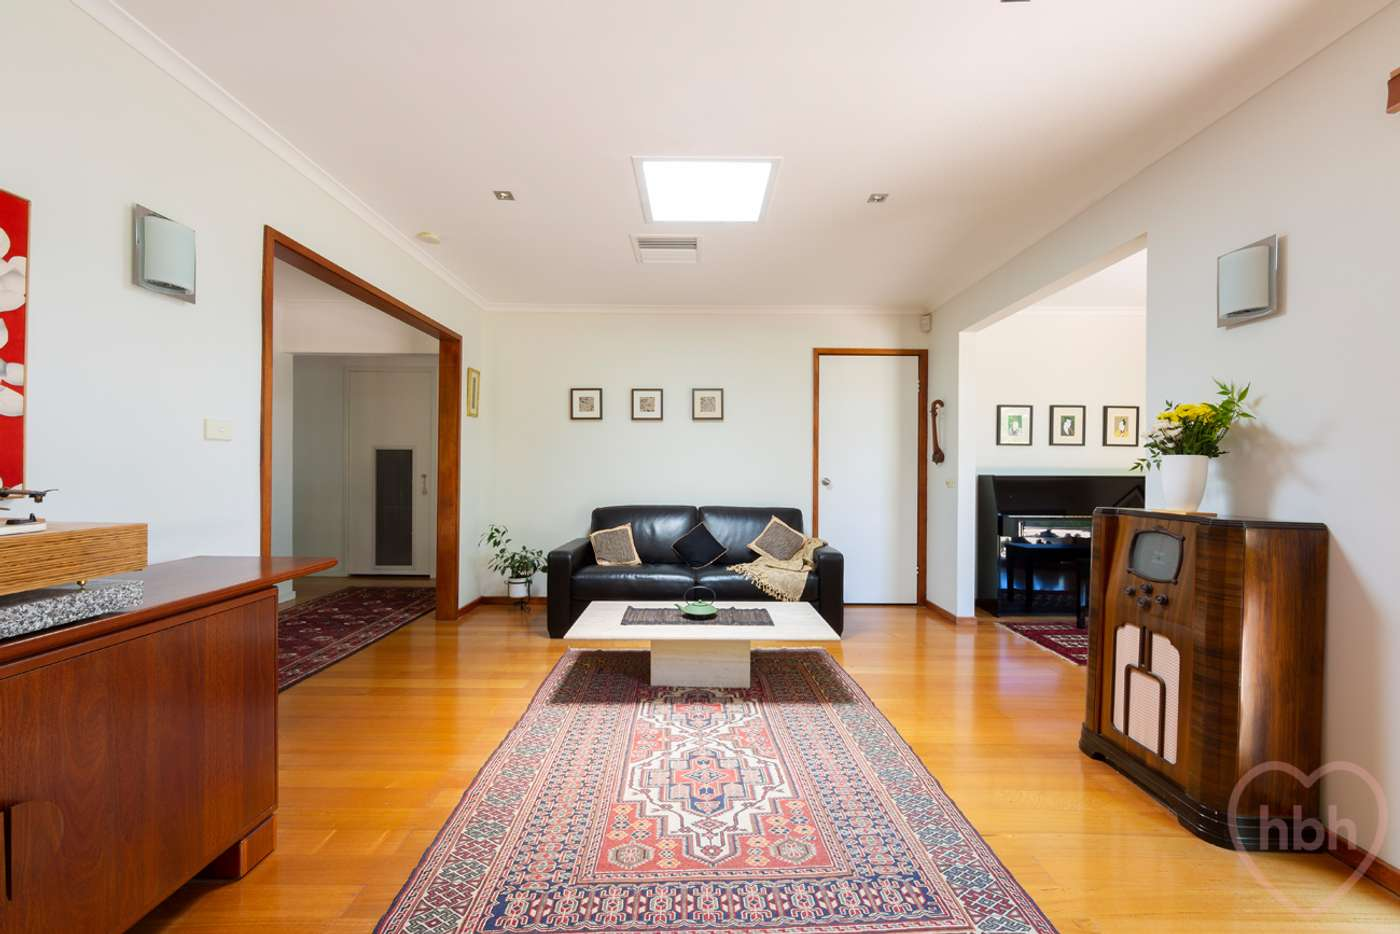 Fifth view of Homely house listing, 20 Alroy Circuit, Hawker ACT 2614